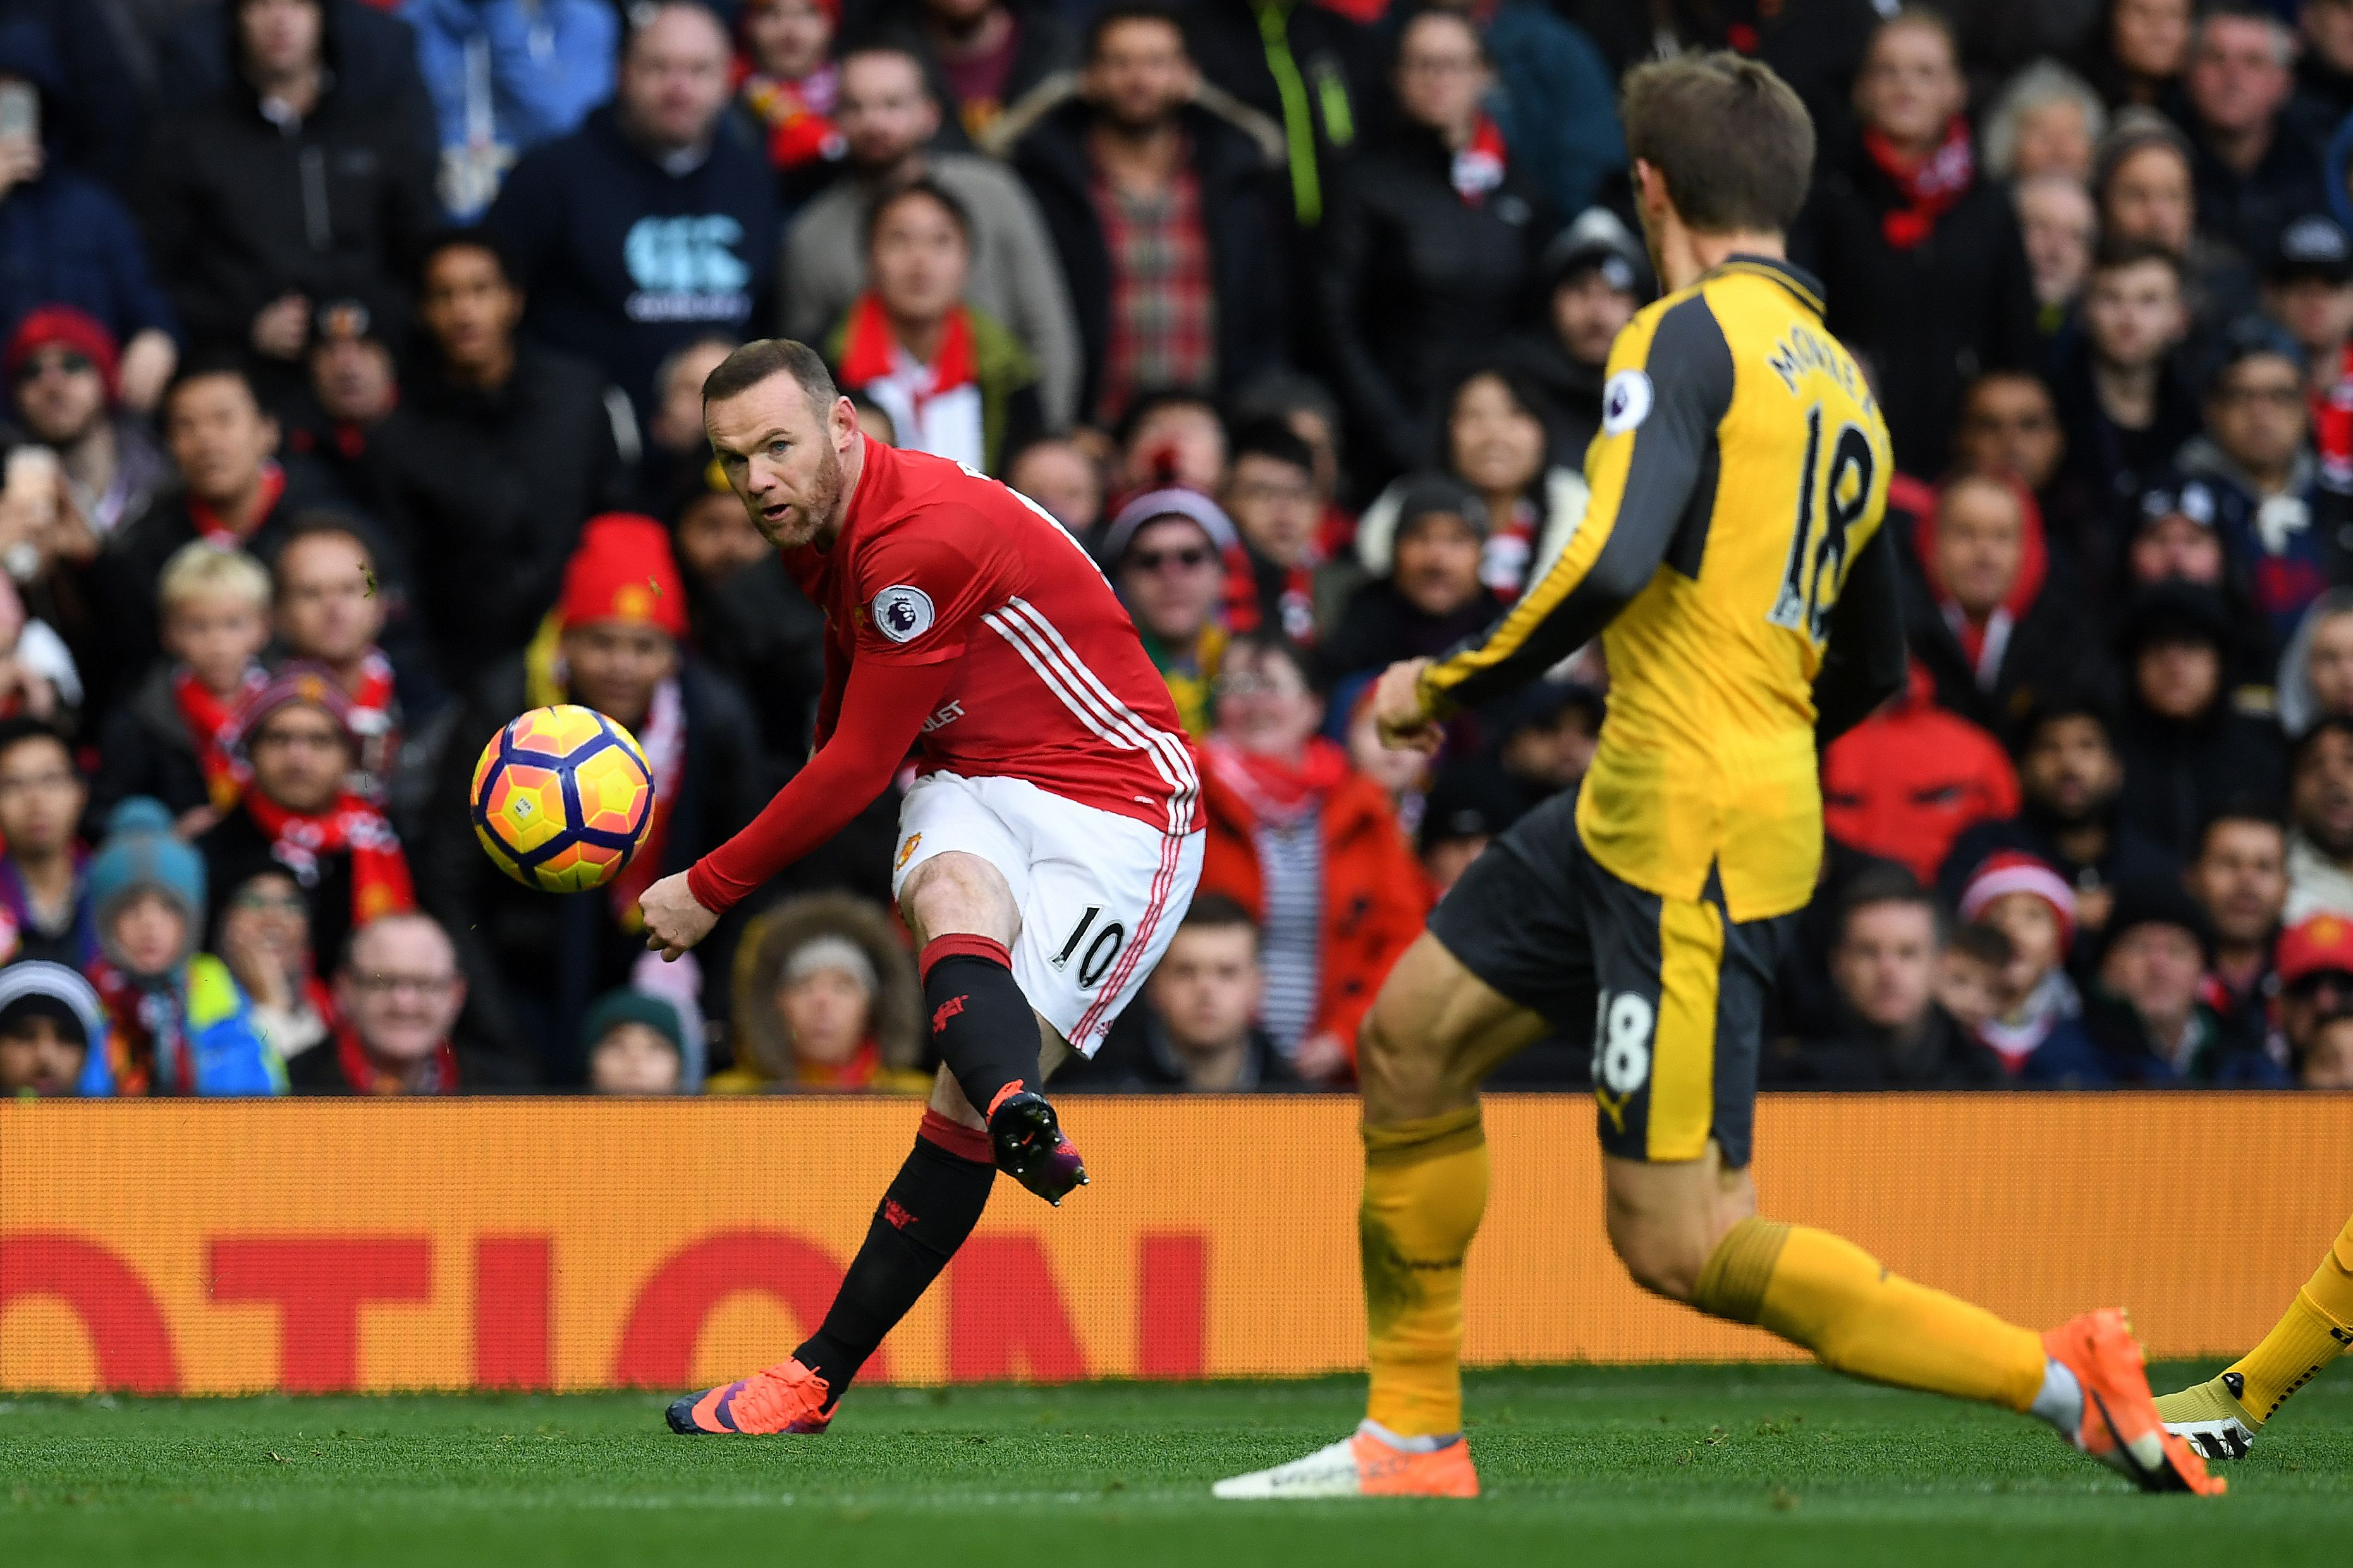 Manchester United have scored just two goals from 74 shots in their last three home games